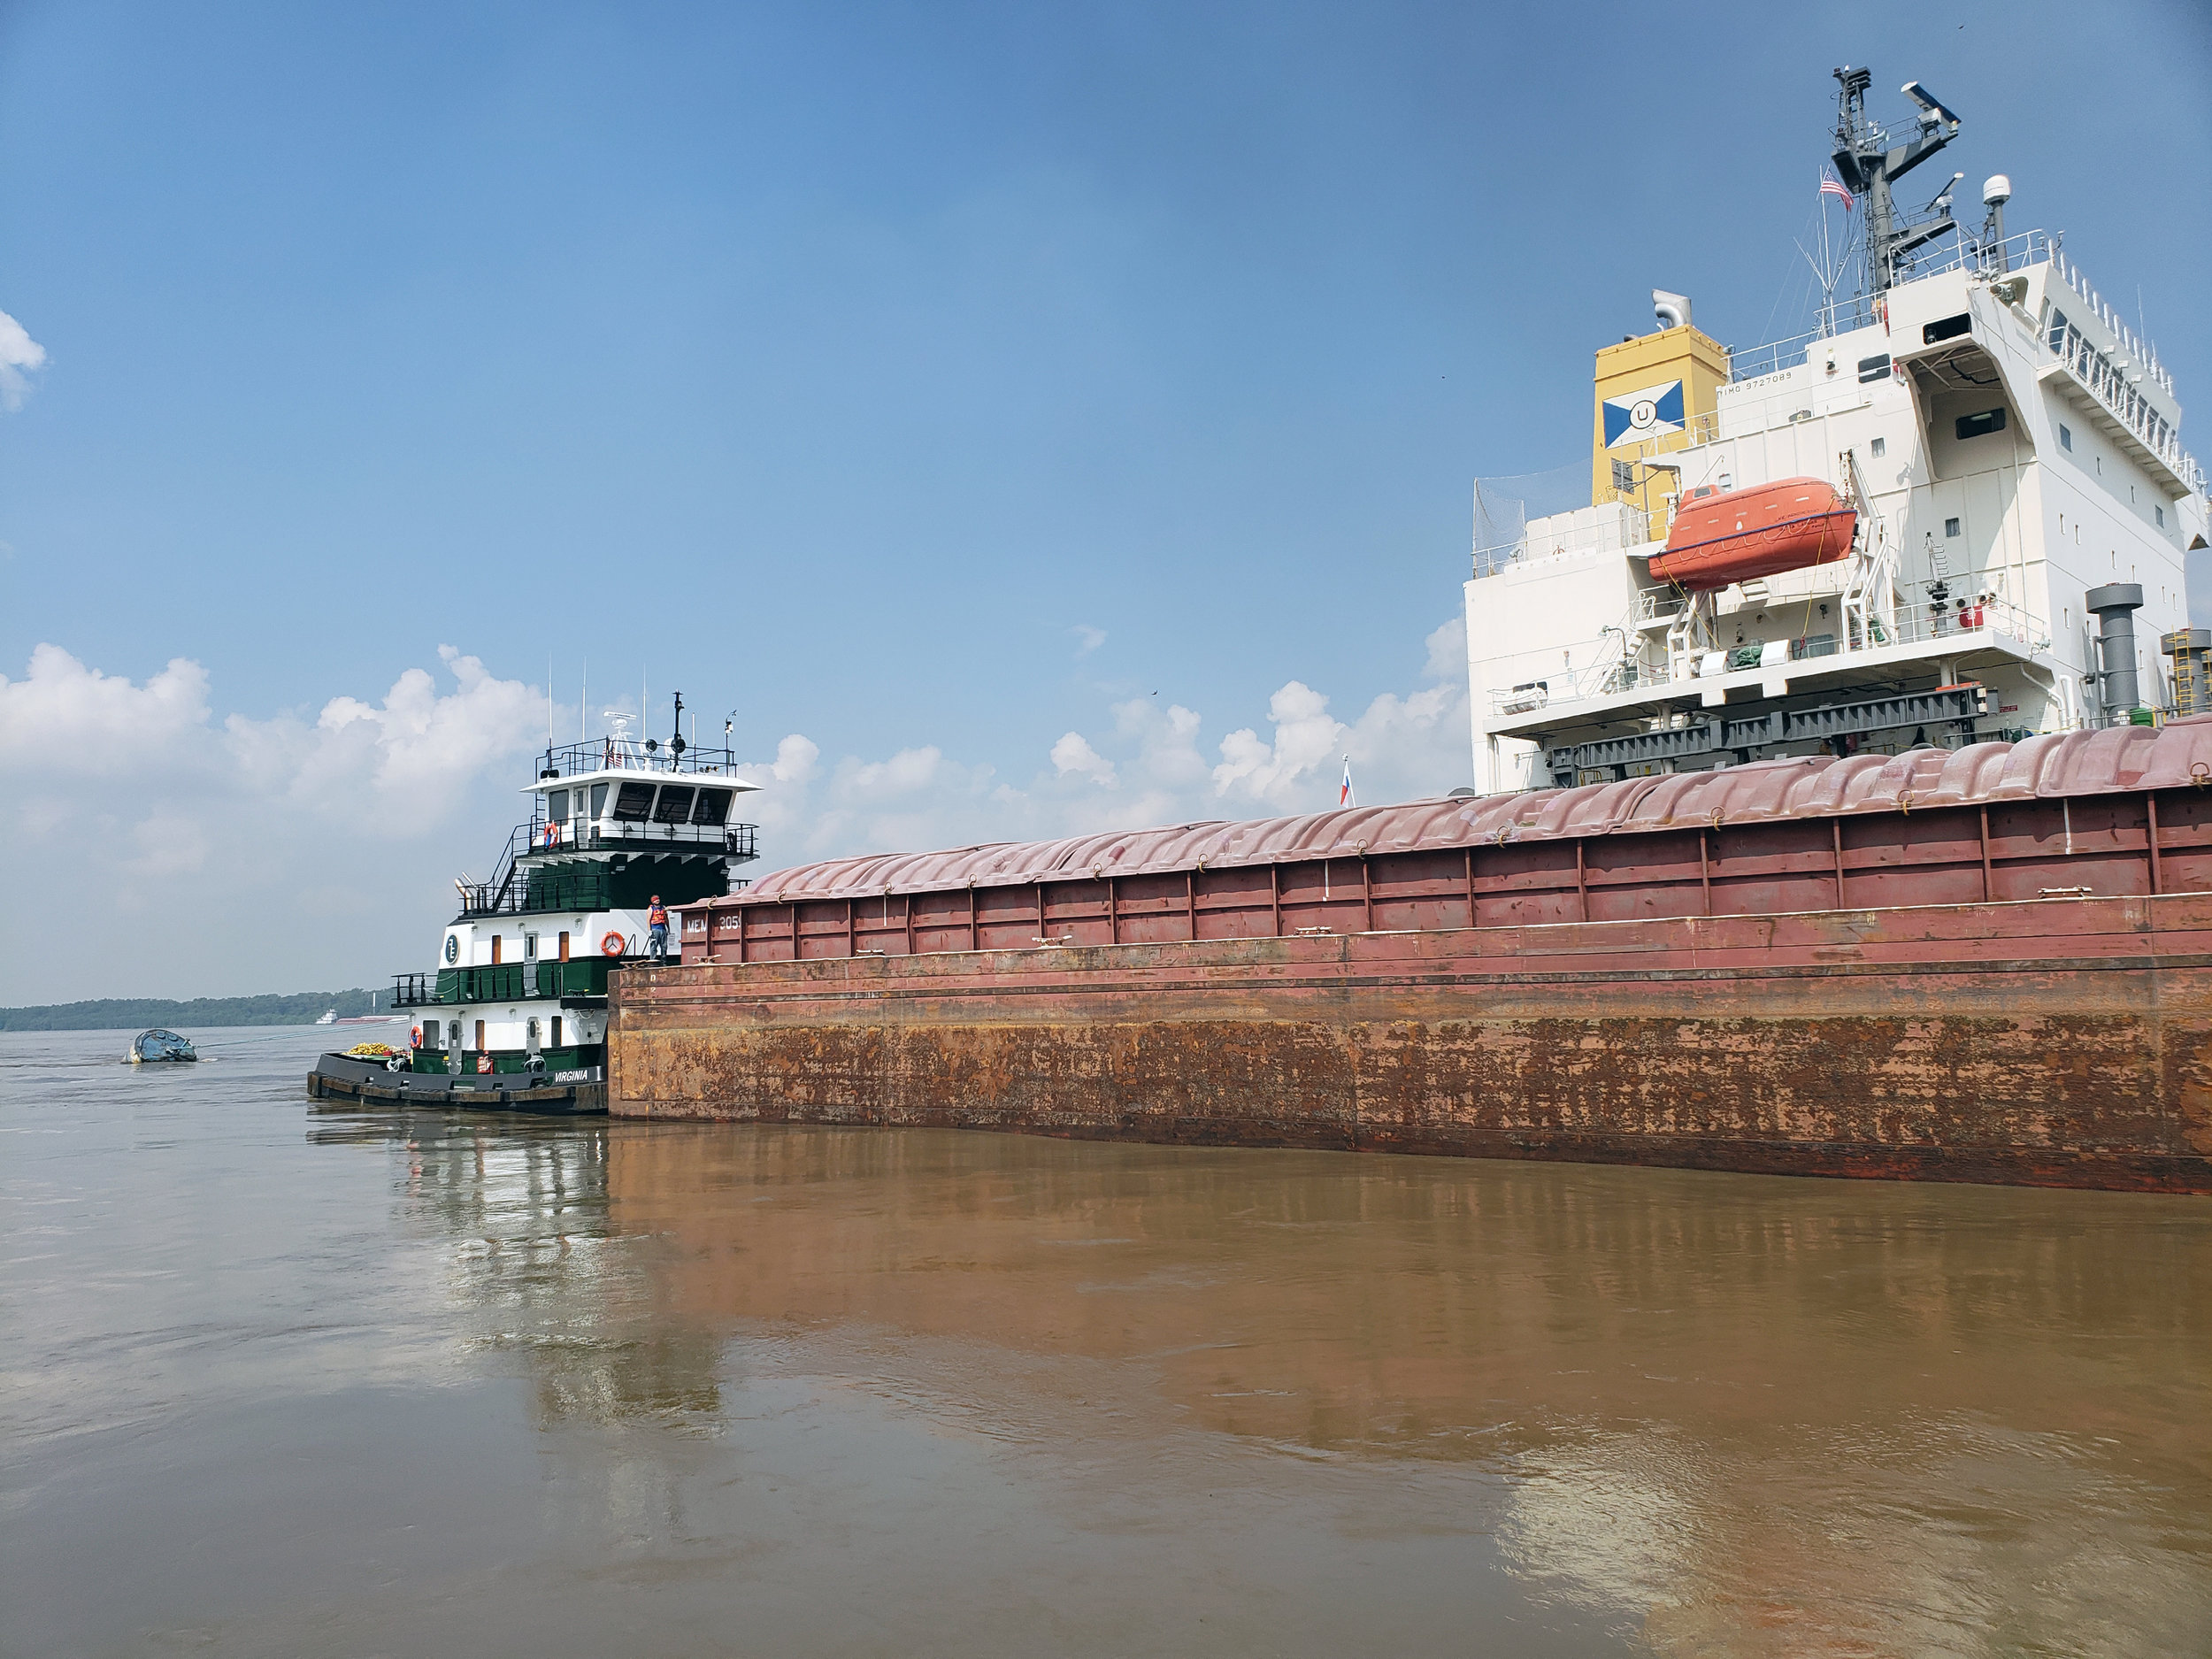 Virginia pushing a barge on the Mississippi_2.jpg